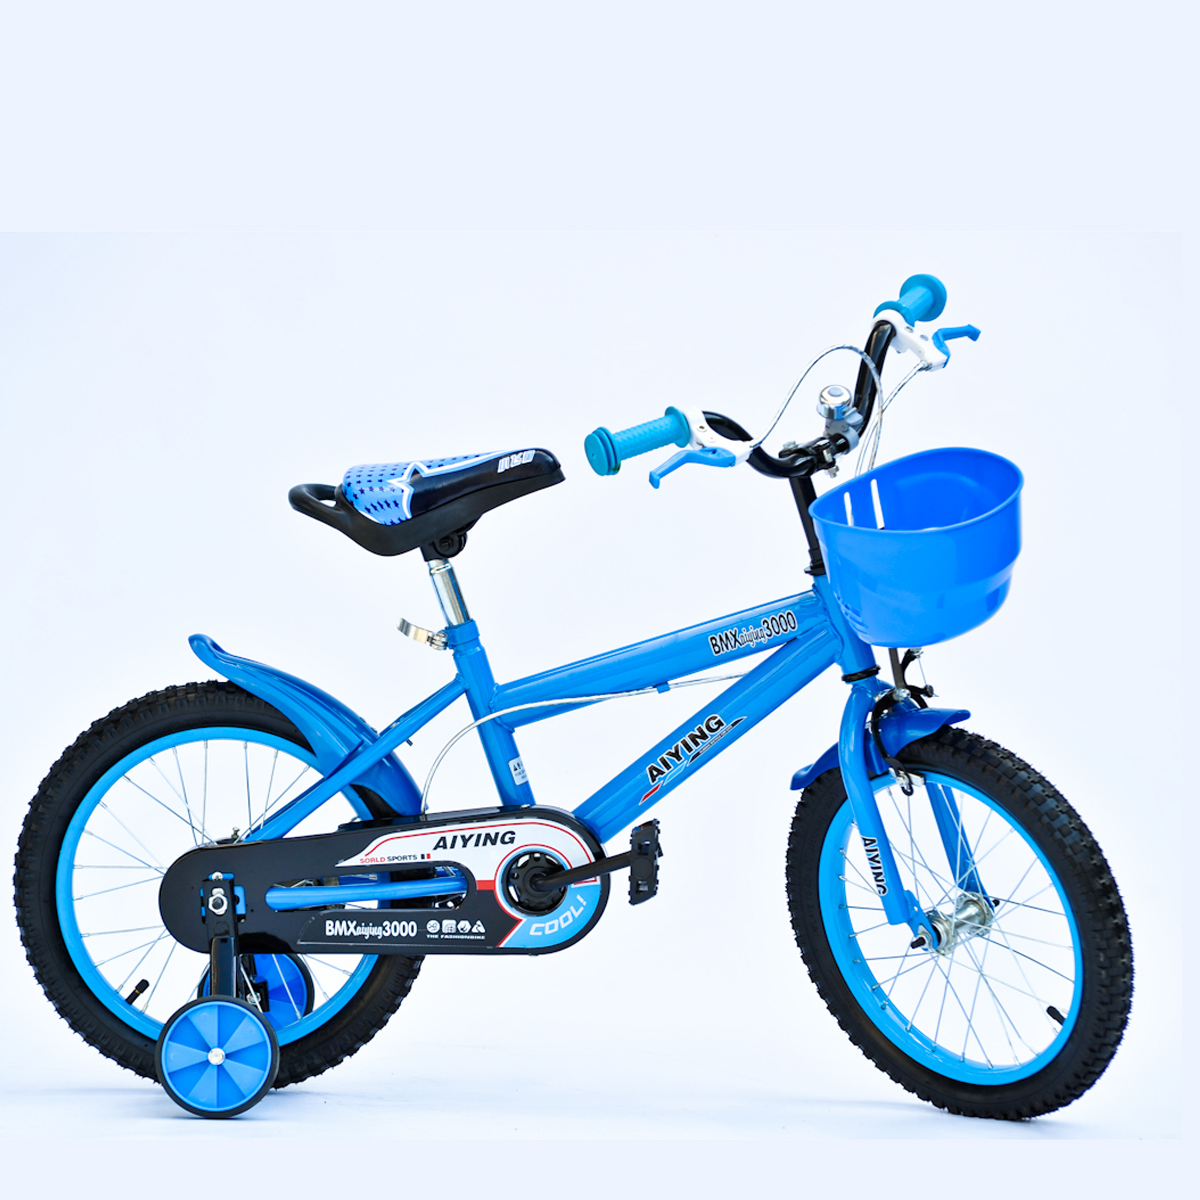 kinder fahrrad f r jungen 16 zoll blau mit viel zubeh r. Black Bedroom Furniture Sets. Home Design Ideas